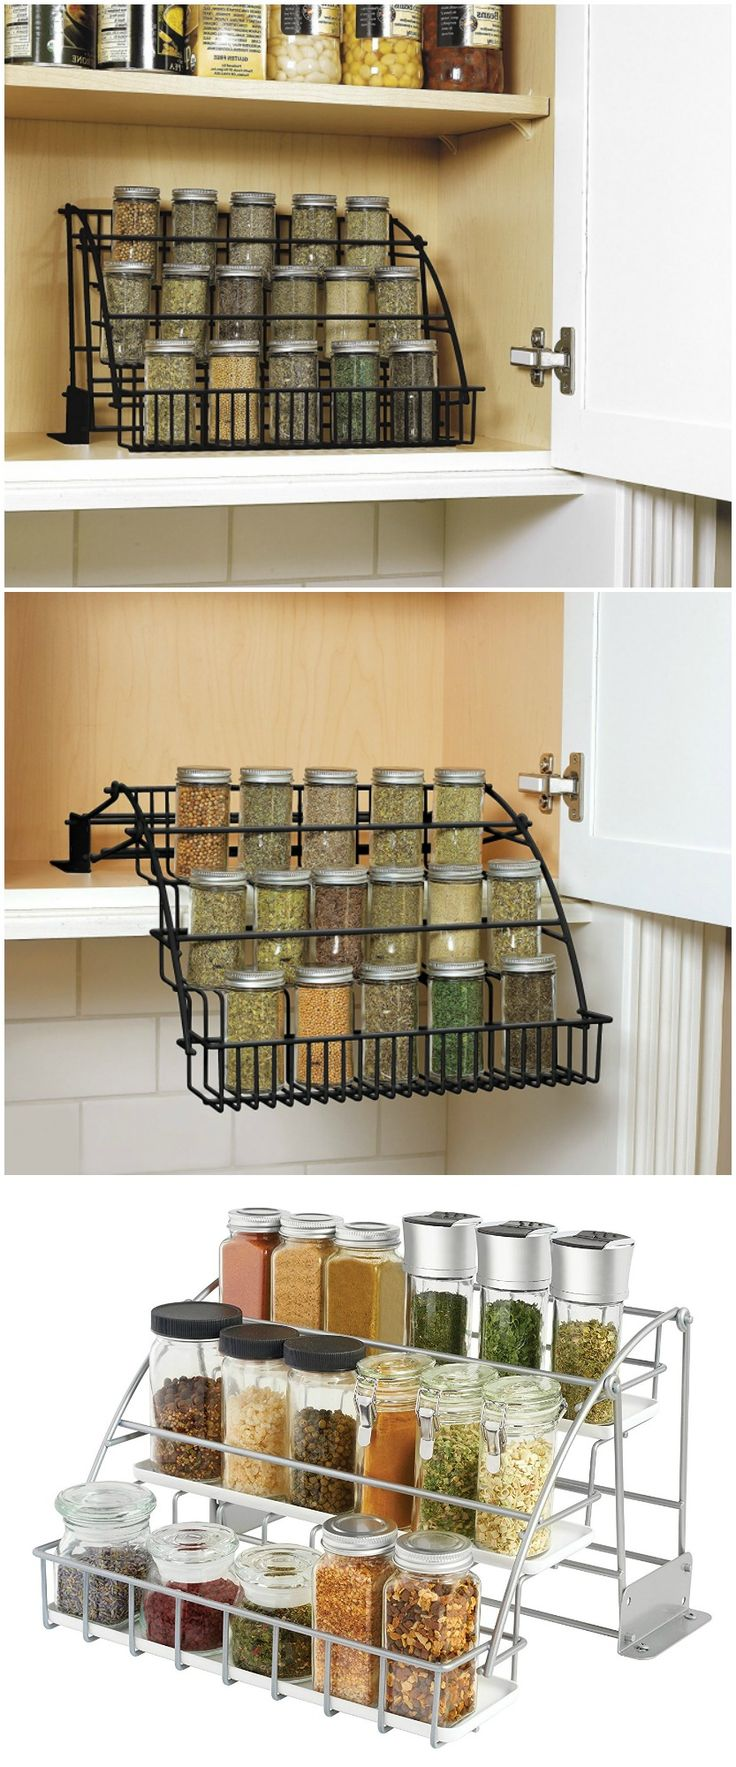 Rubbermaid Pull Down Spice Rack. Maximize storage plus easy access. #affiliate d'autres gadgets ici : http://amzn.to/2kWxdPn